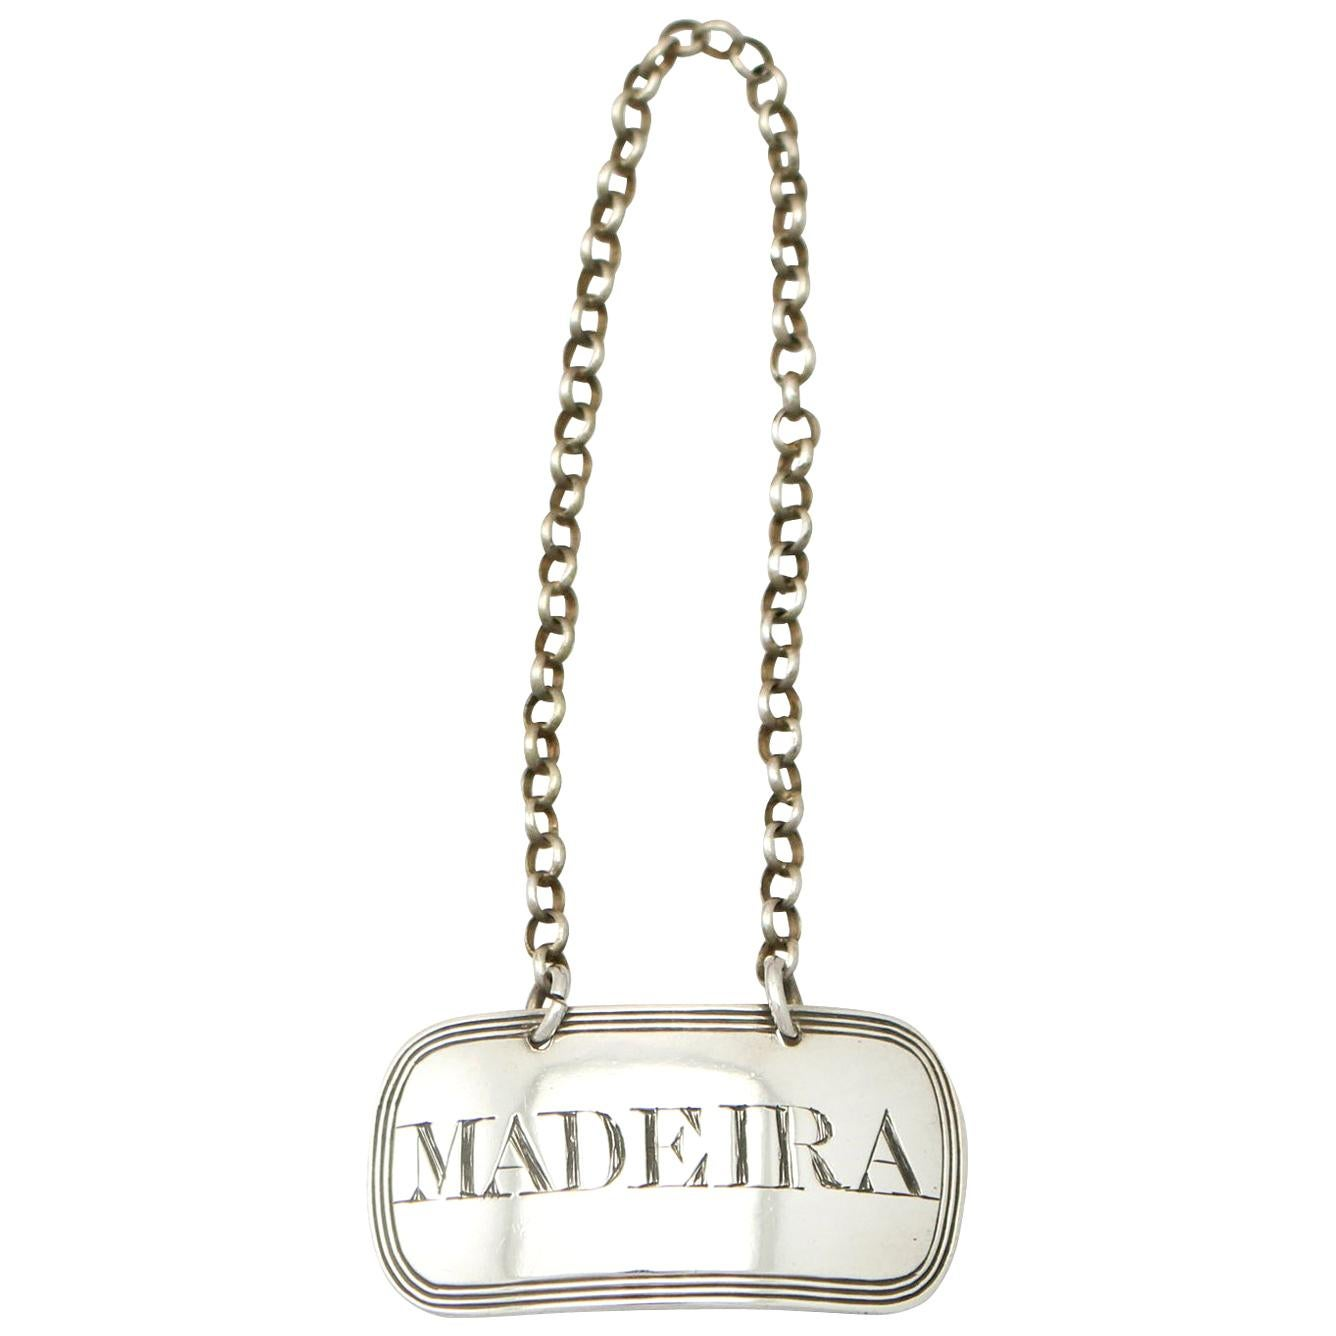 Antique 1819 Newcastle Sterling Silver 'Madeira' Decanter Label or Bottle Ticket